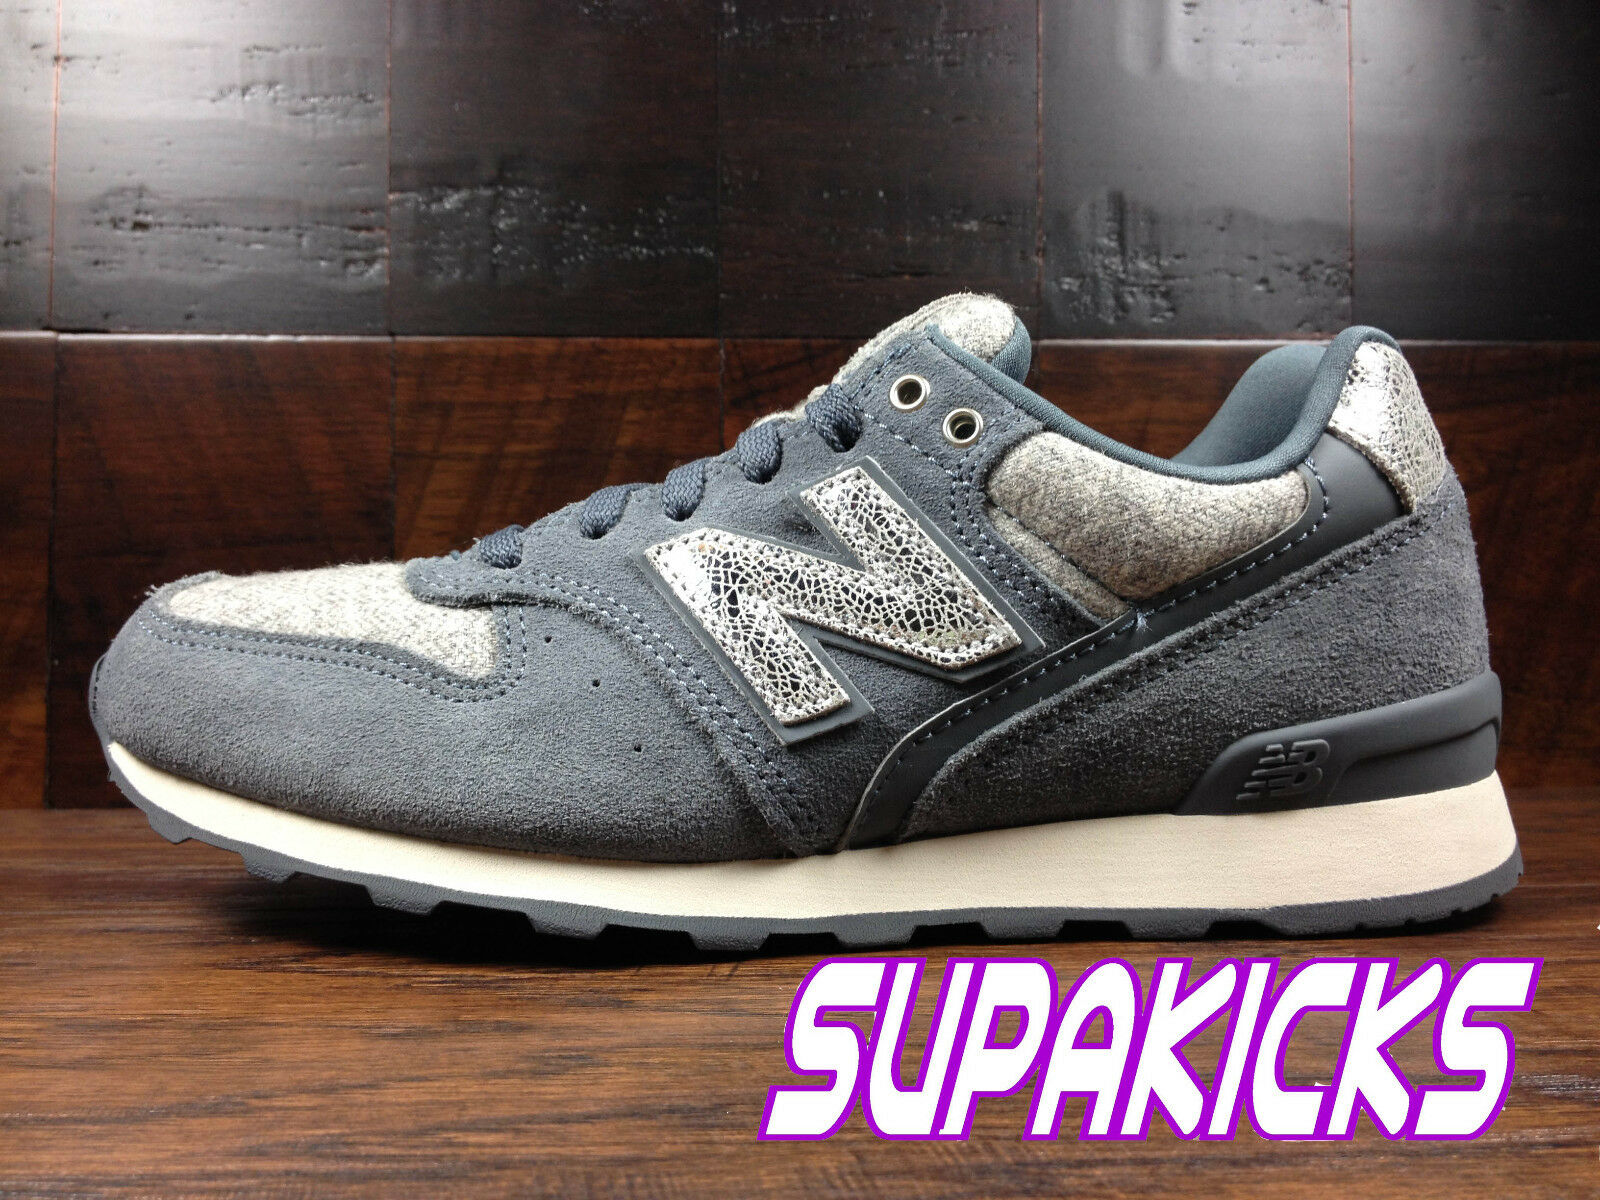 New Collection Balance Damenschuhe (WL696NTA) CAPSULE Collection New TWEED (GREY / SILVER) Wmns 6-10 ffc66d